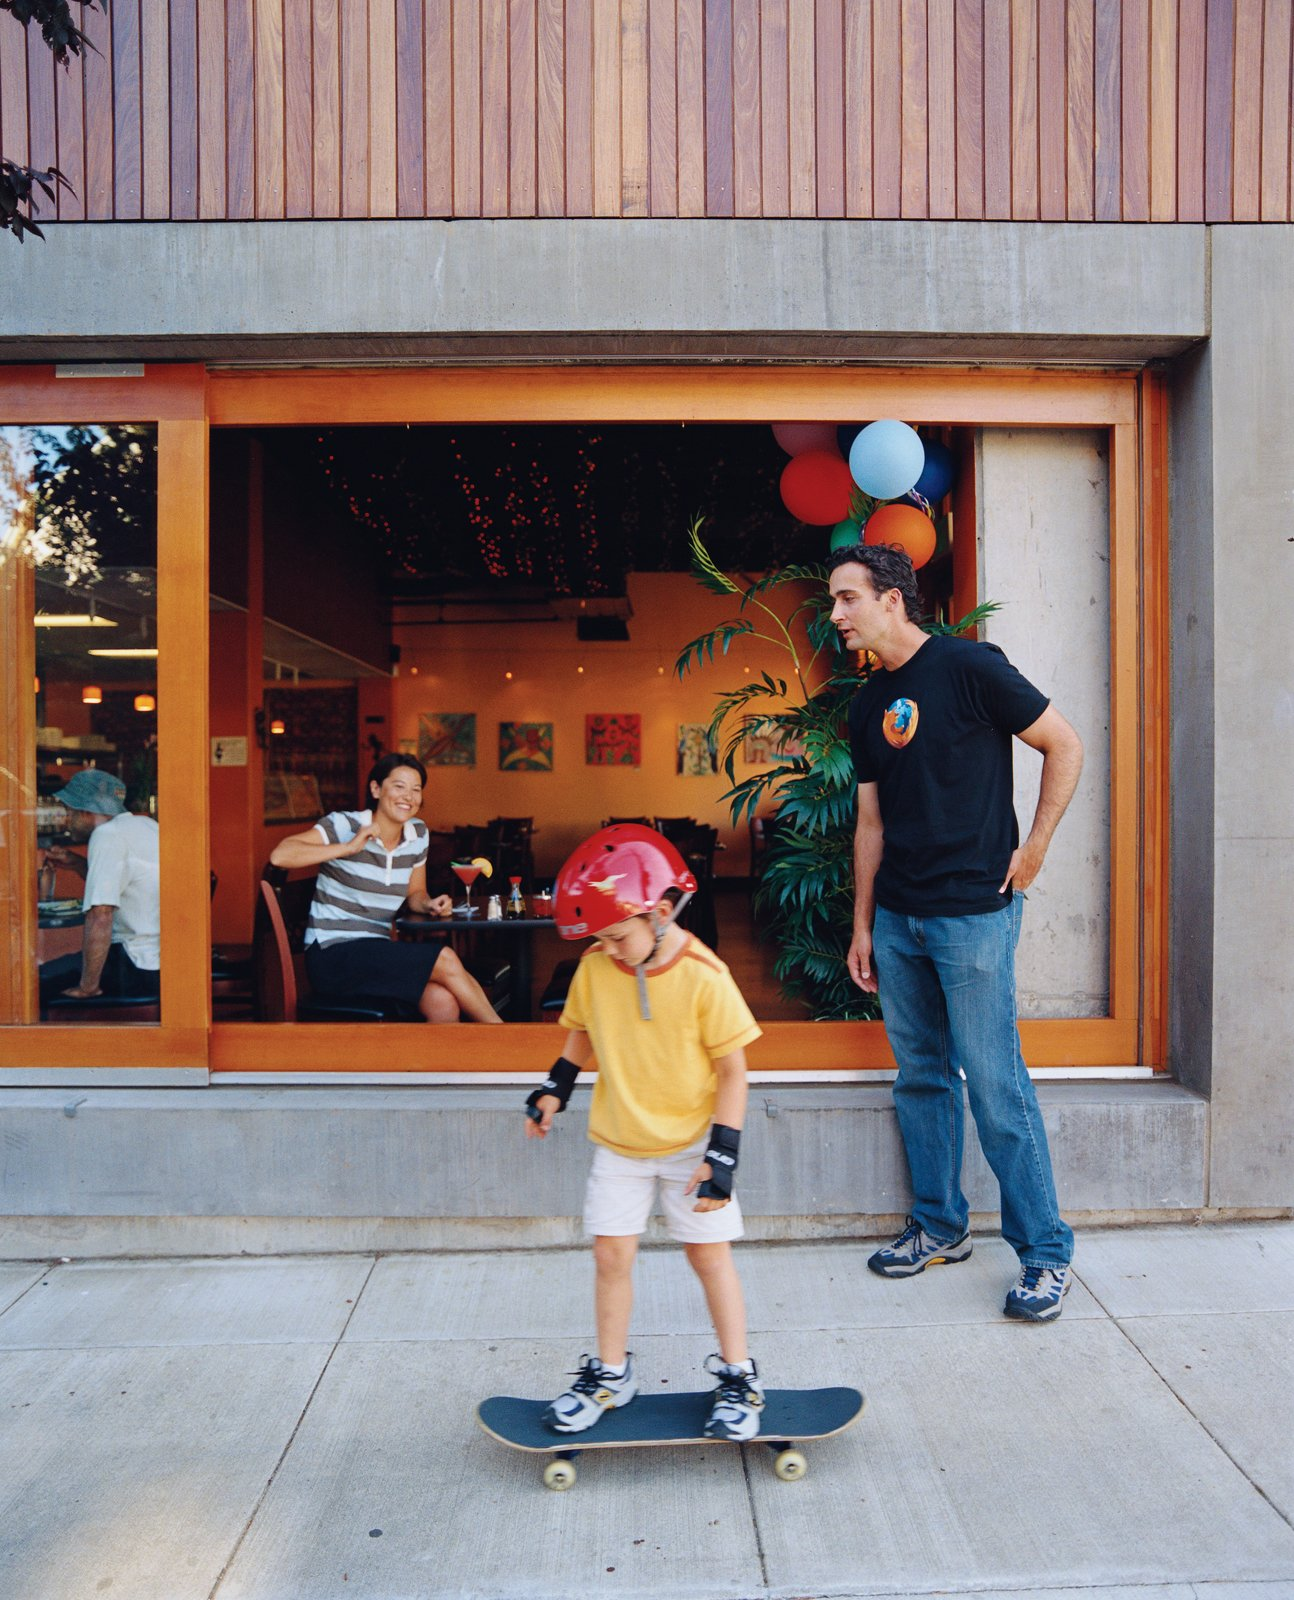 Resident Brooks Jordan and his son Leif take some time out to play outside the Belmont, where a steady stream of pedestrians and diners lend the building an inviting feel.  Photo 8 of 10 in Community Building